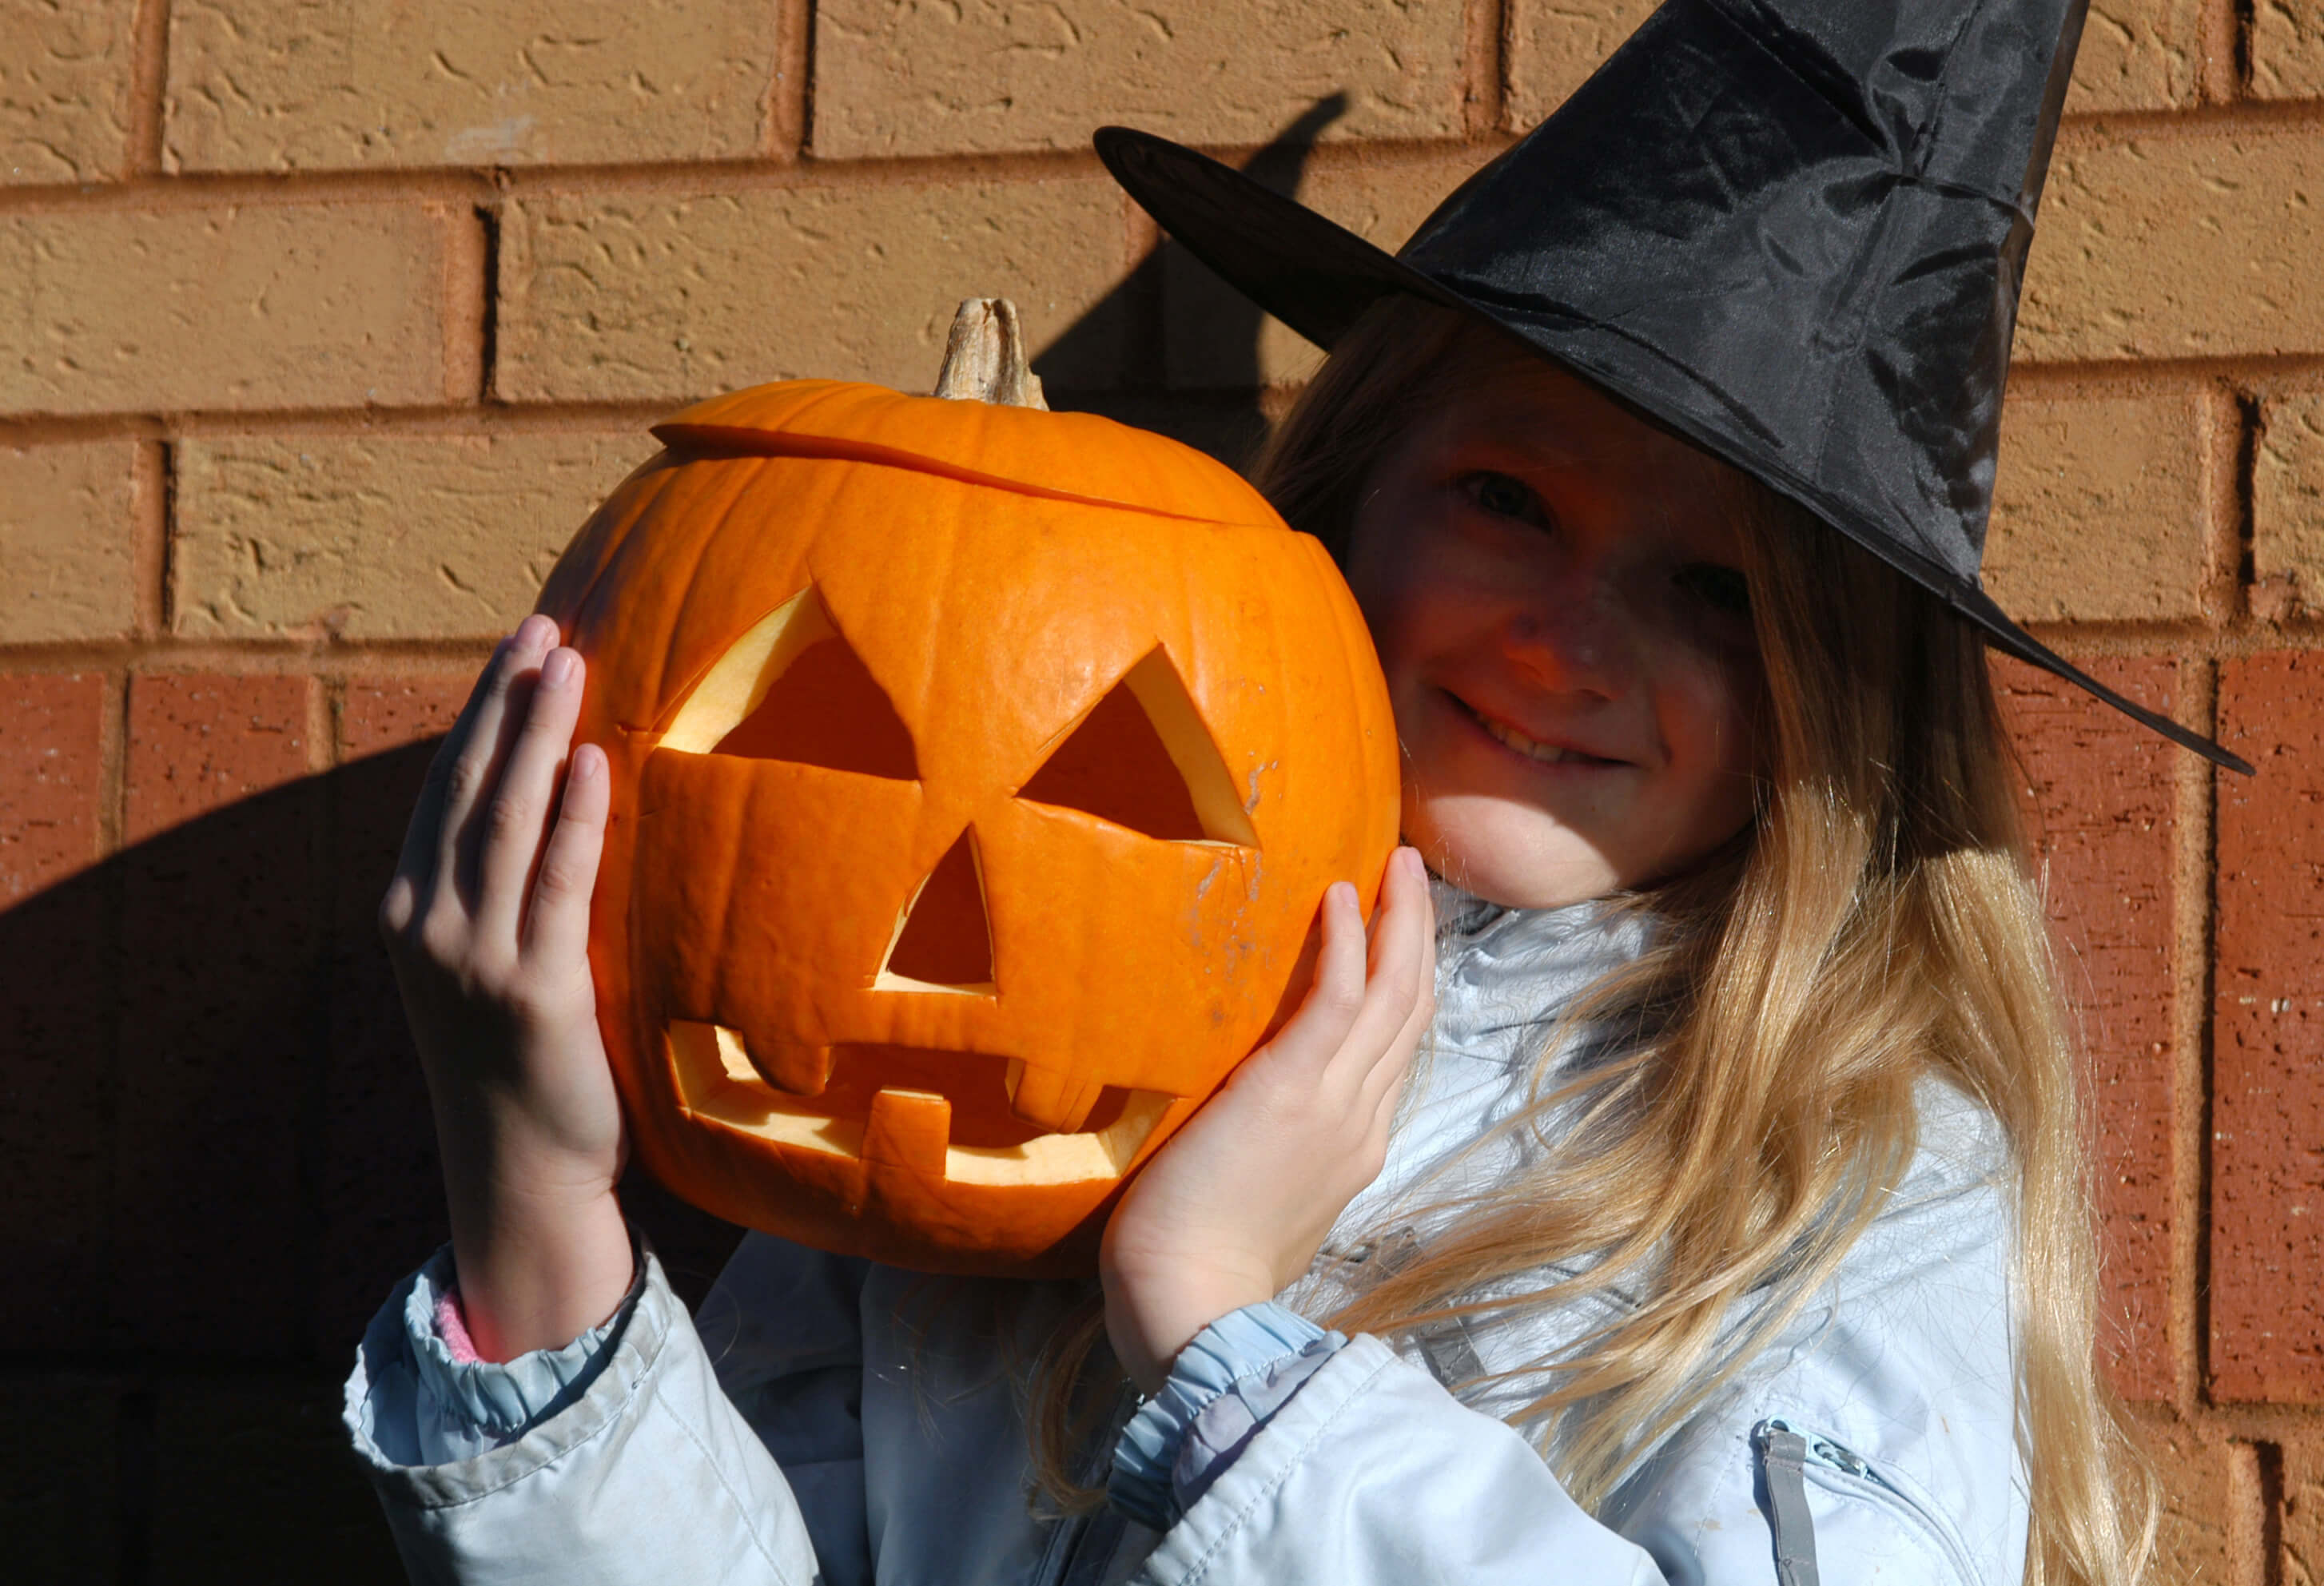 Young girl with a Halloween pumpkin